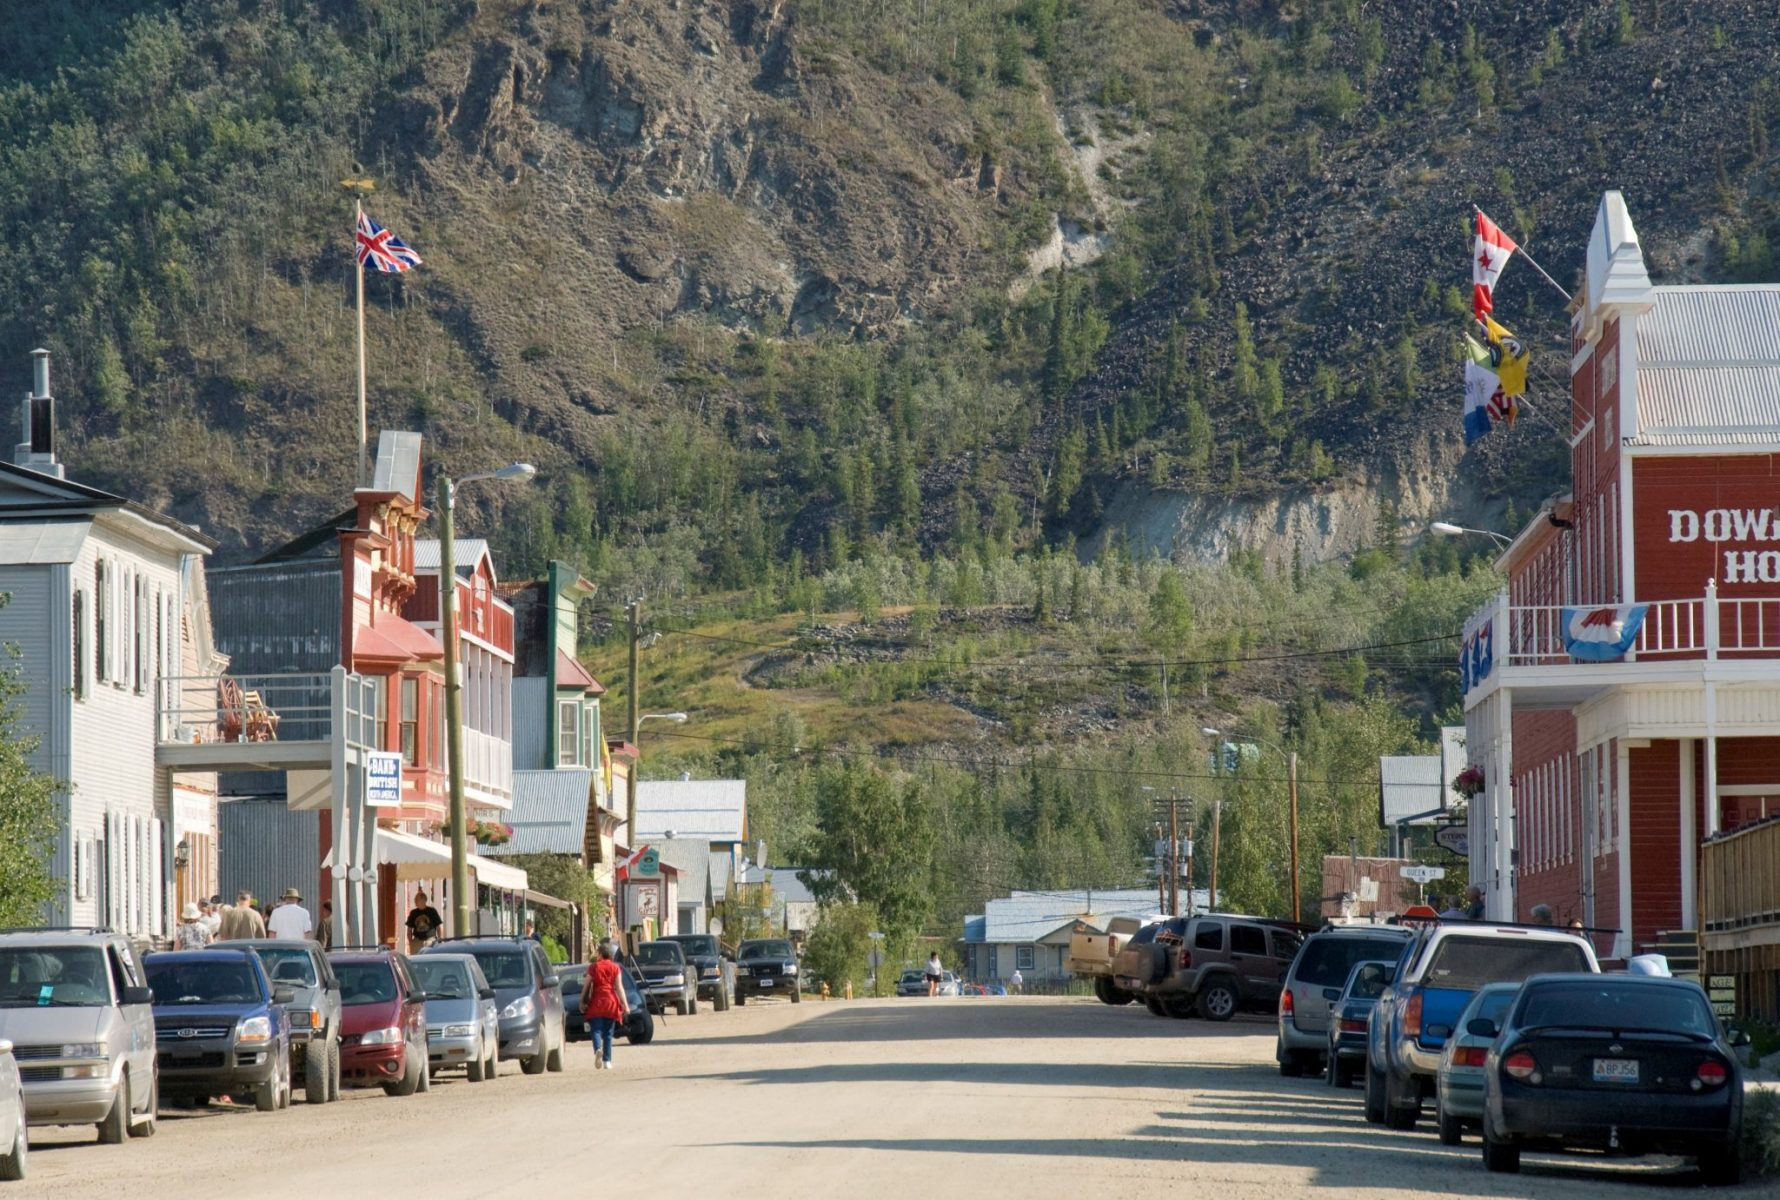 A gravel street in a small town lined with parked cars. The buildings are restored historic buildings. In the background in a forested hillside. Walking the historic streets is one of the best things to do in Dawson City